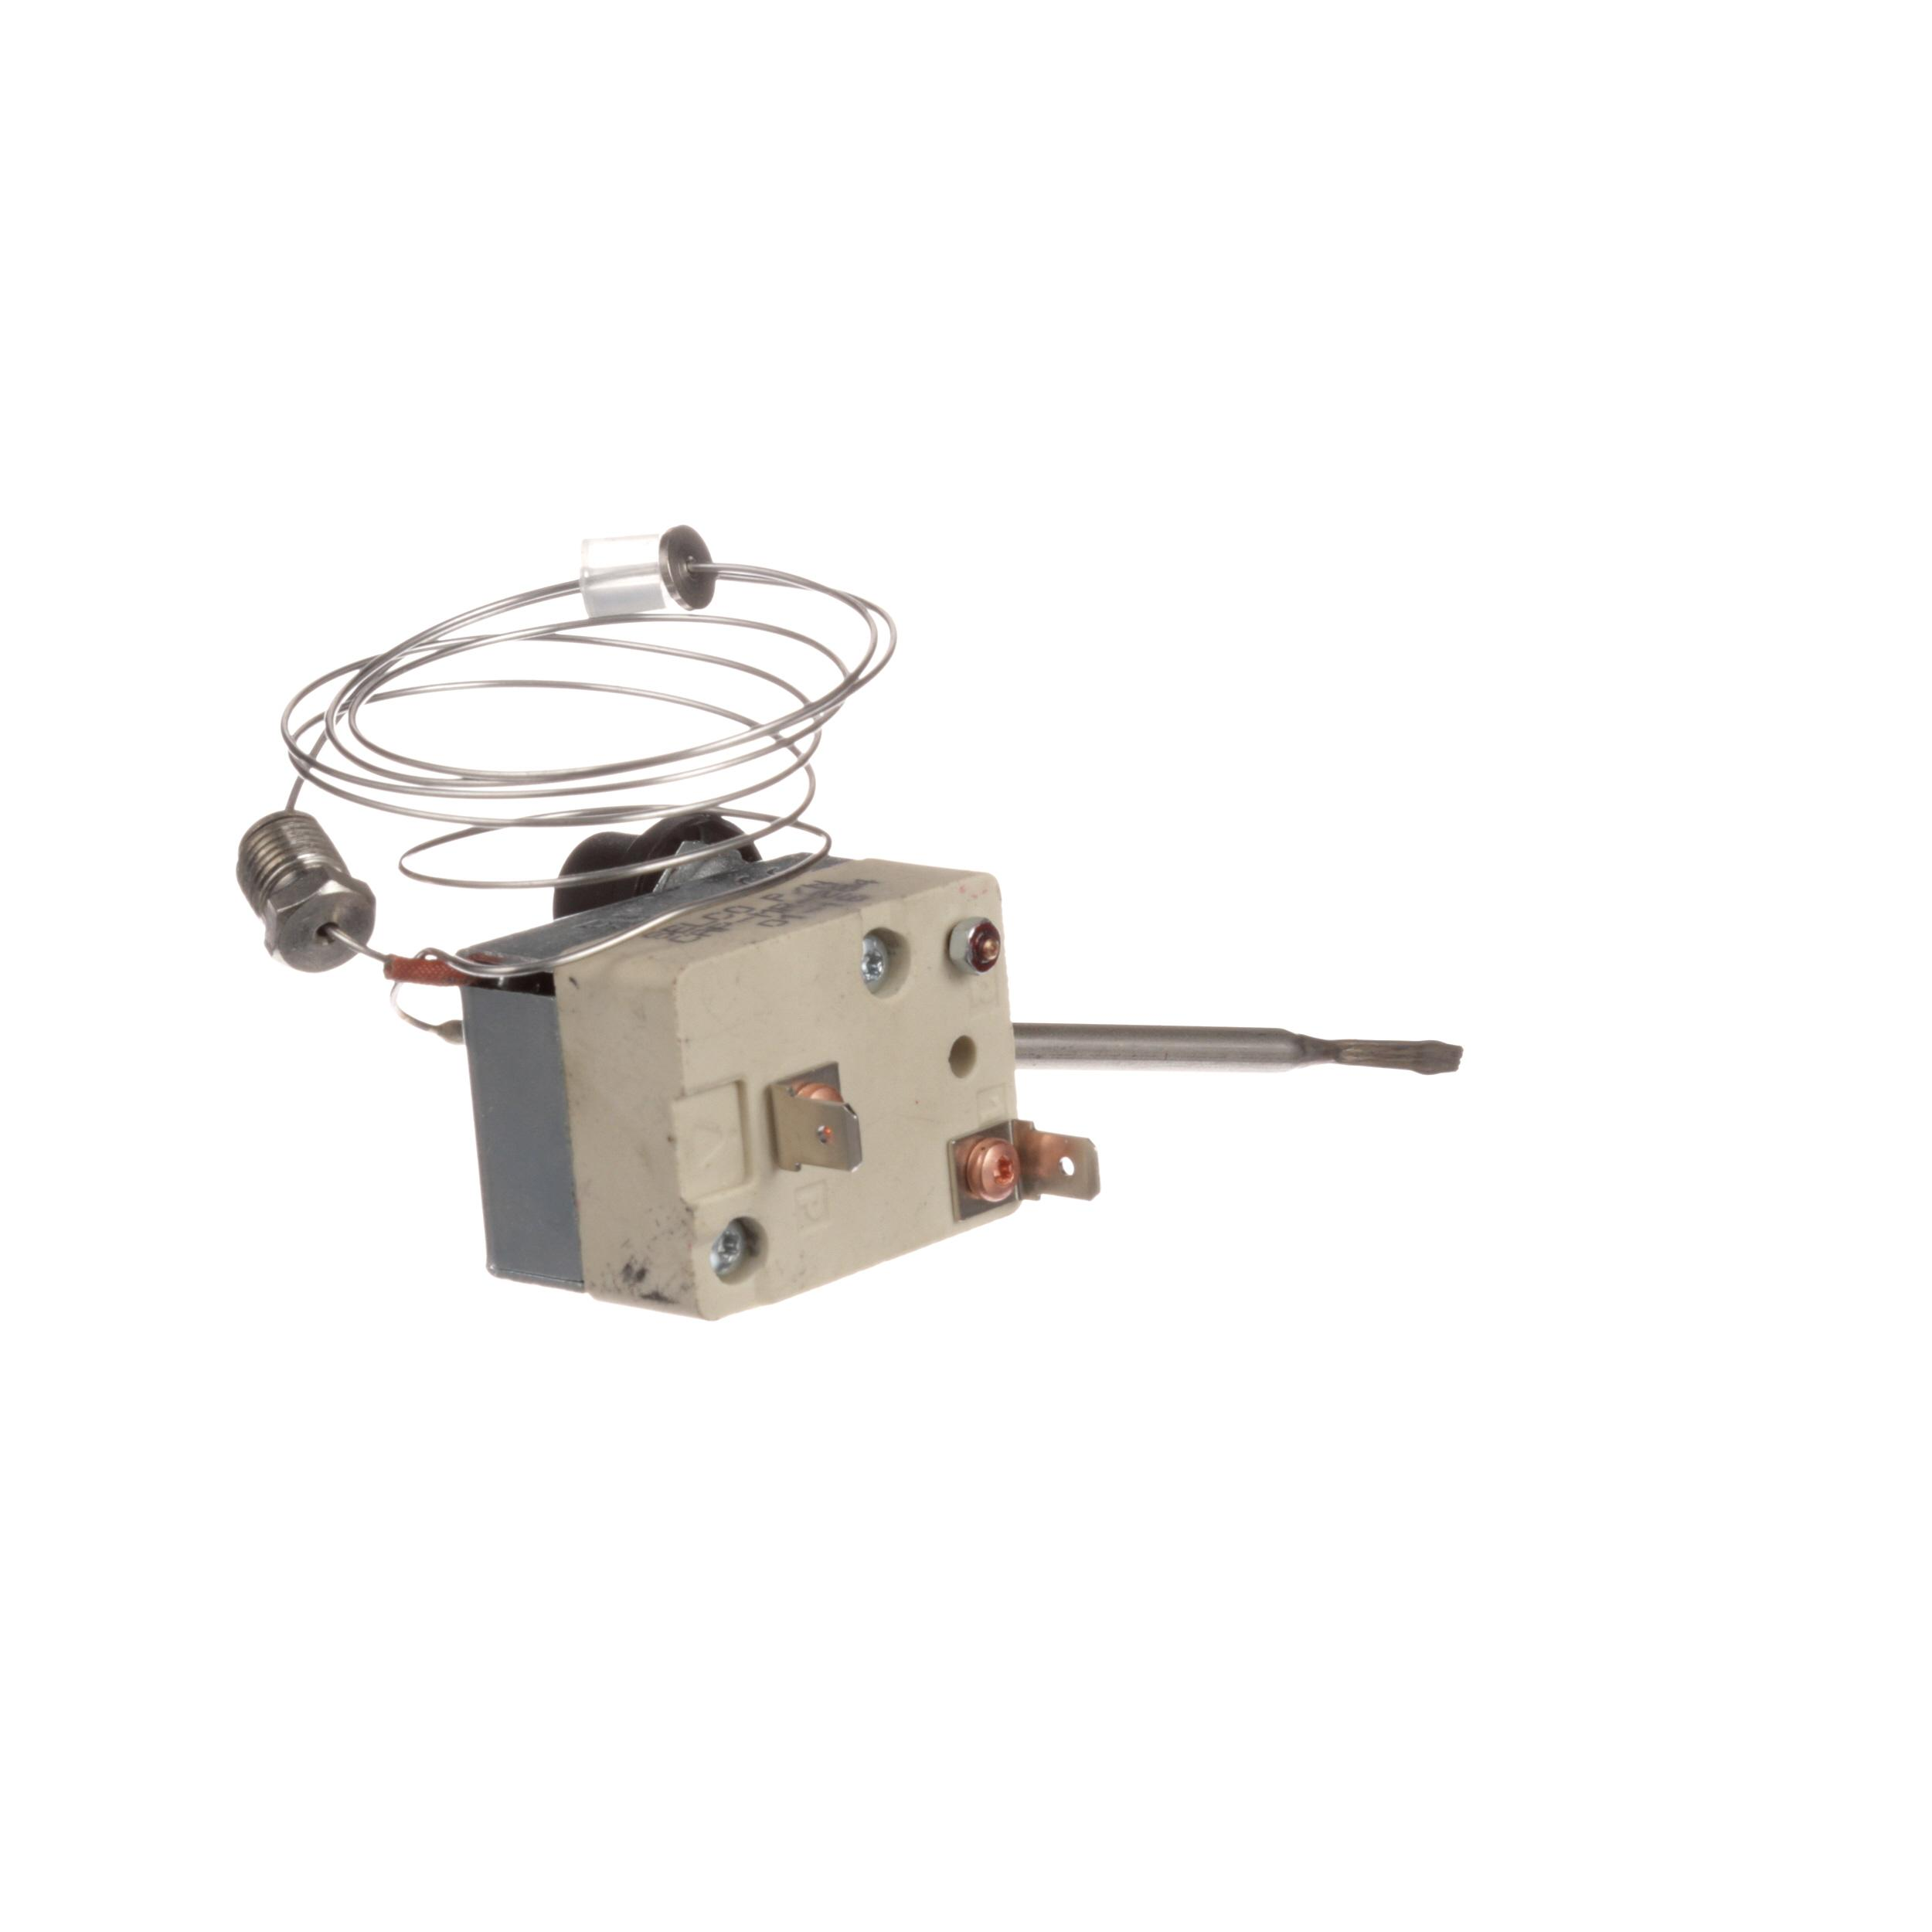 CLEVELAND HI-LIMIT RESET SWITCH (140 DEGREES C)